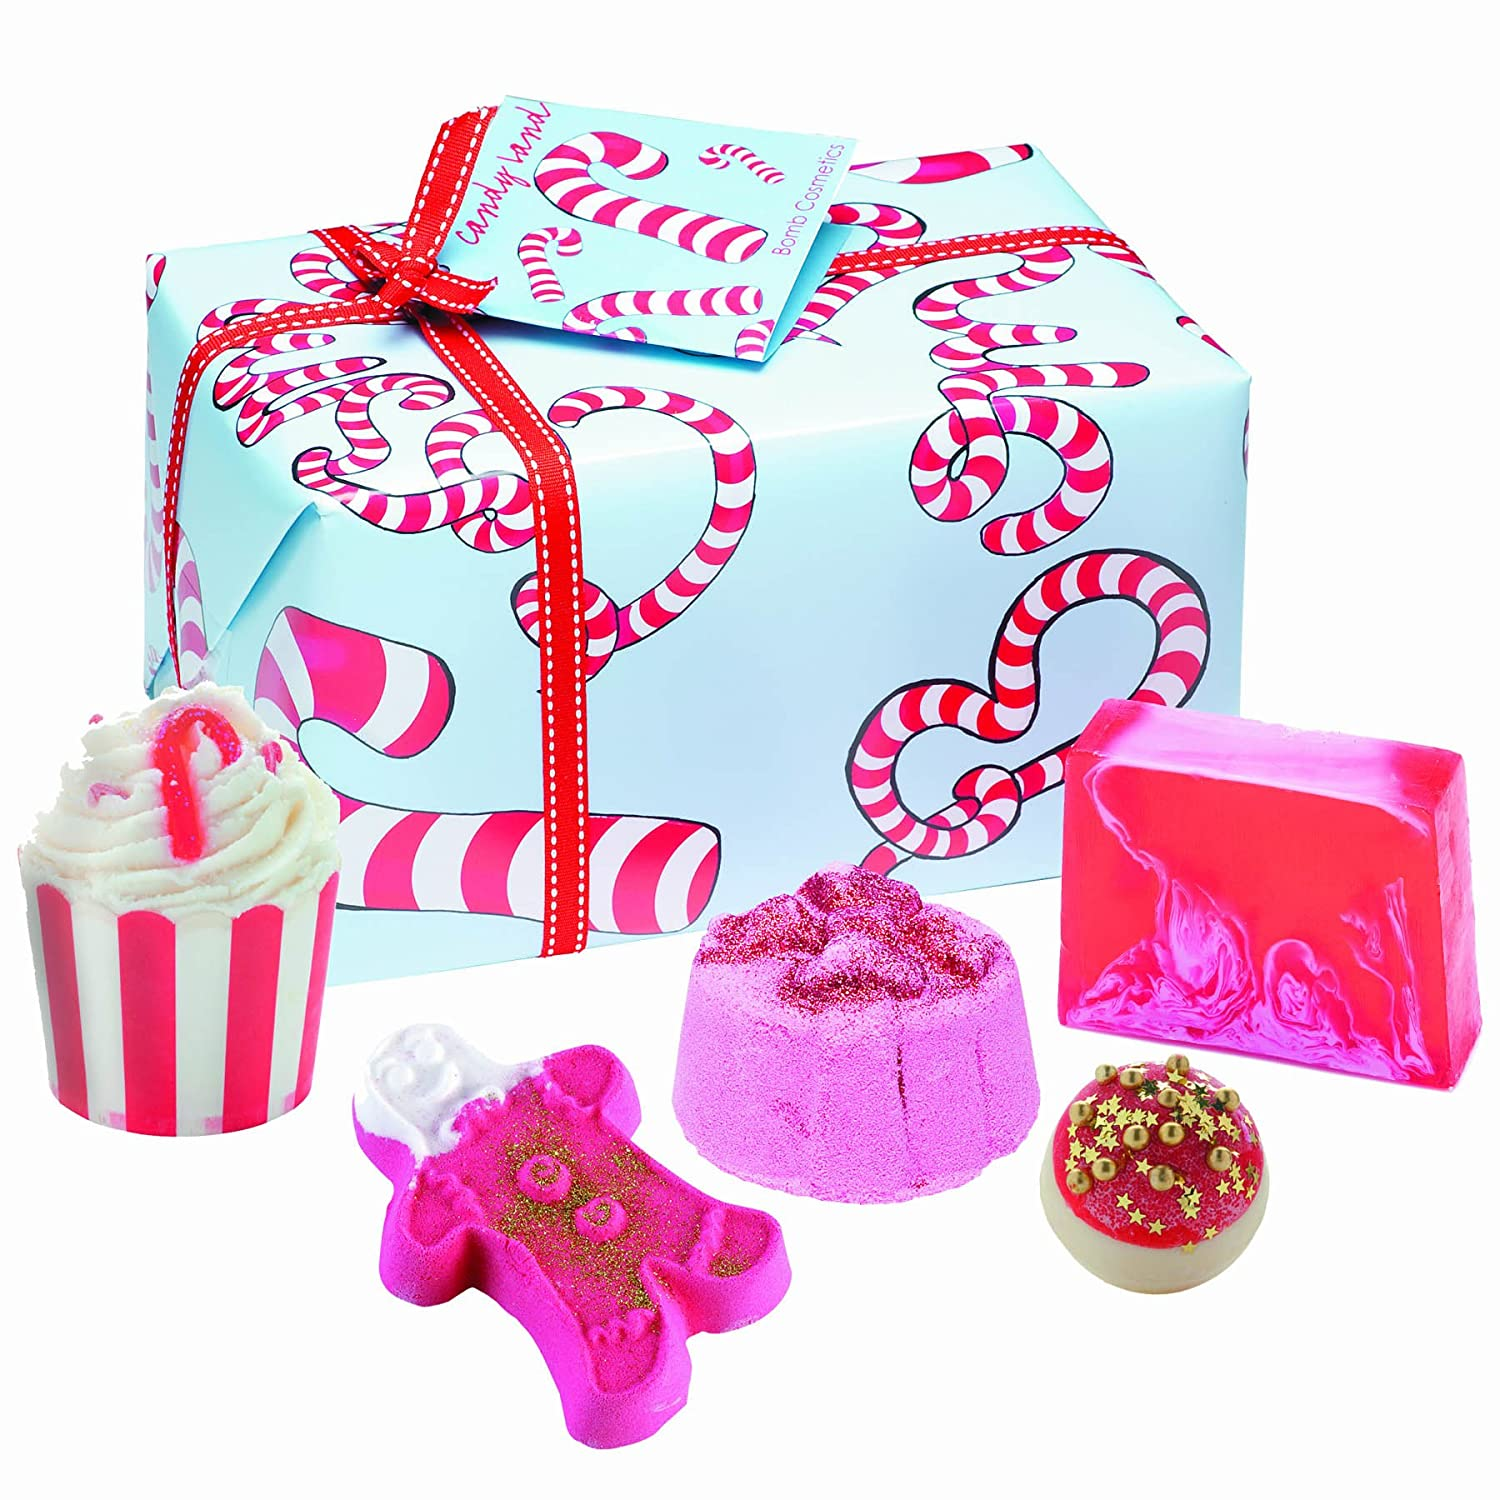 Bomb cosmetics candy land handmade gift pack amazon beauty negle Image collections